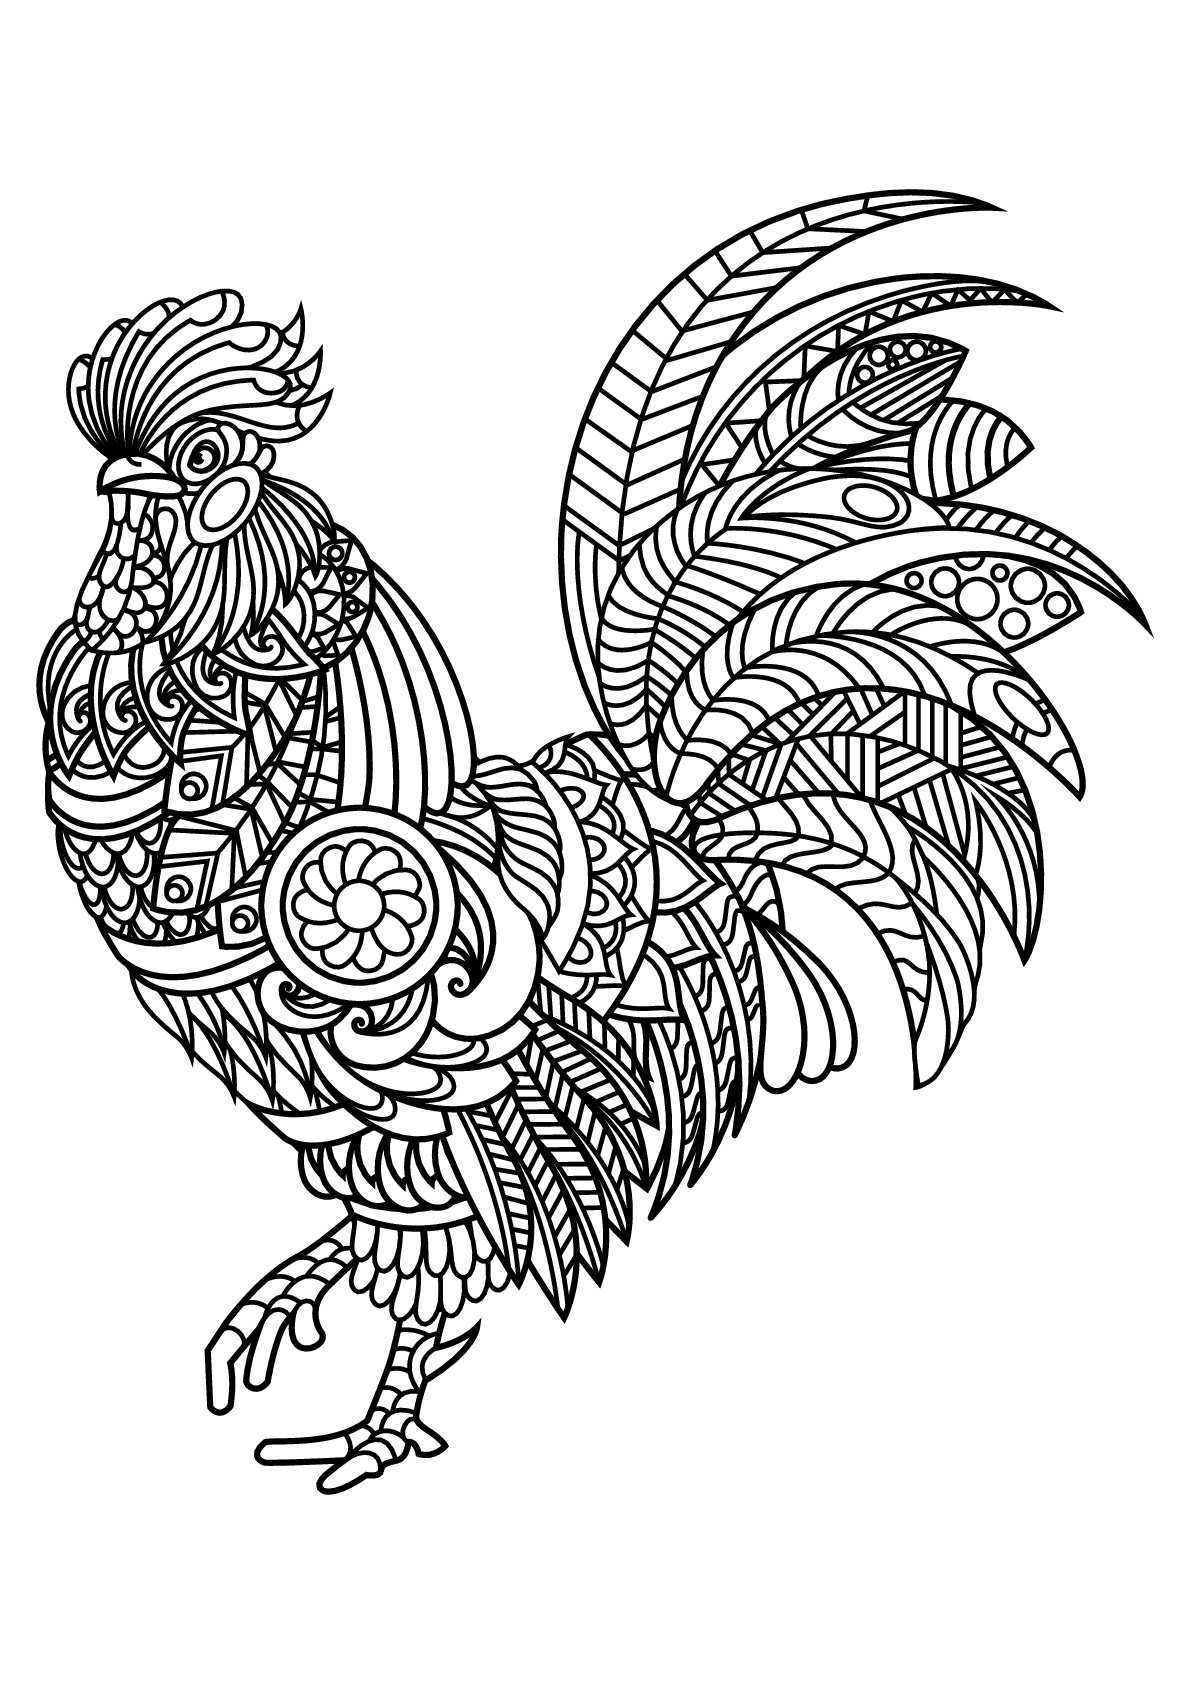 Rooster - Coloring Pages for Adults